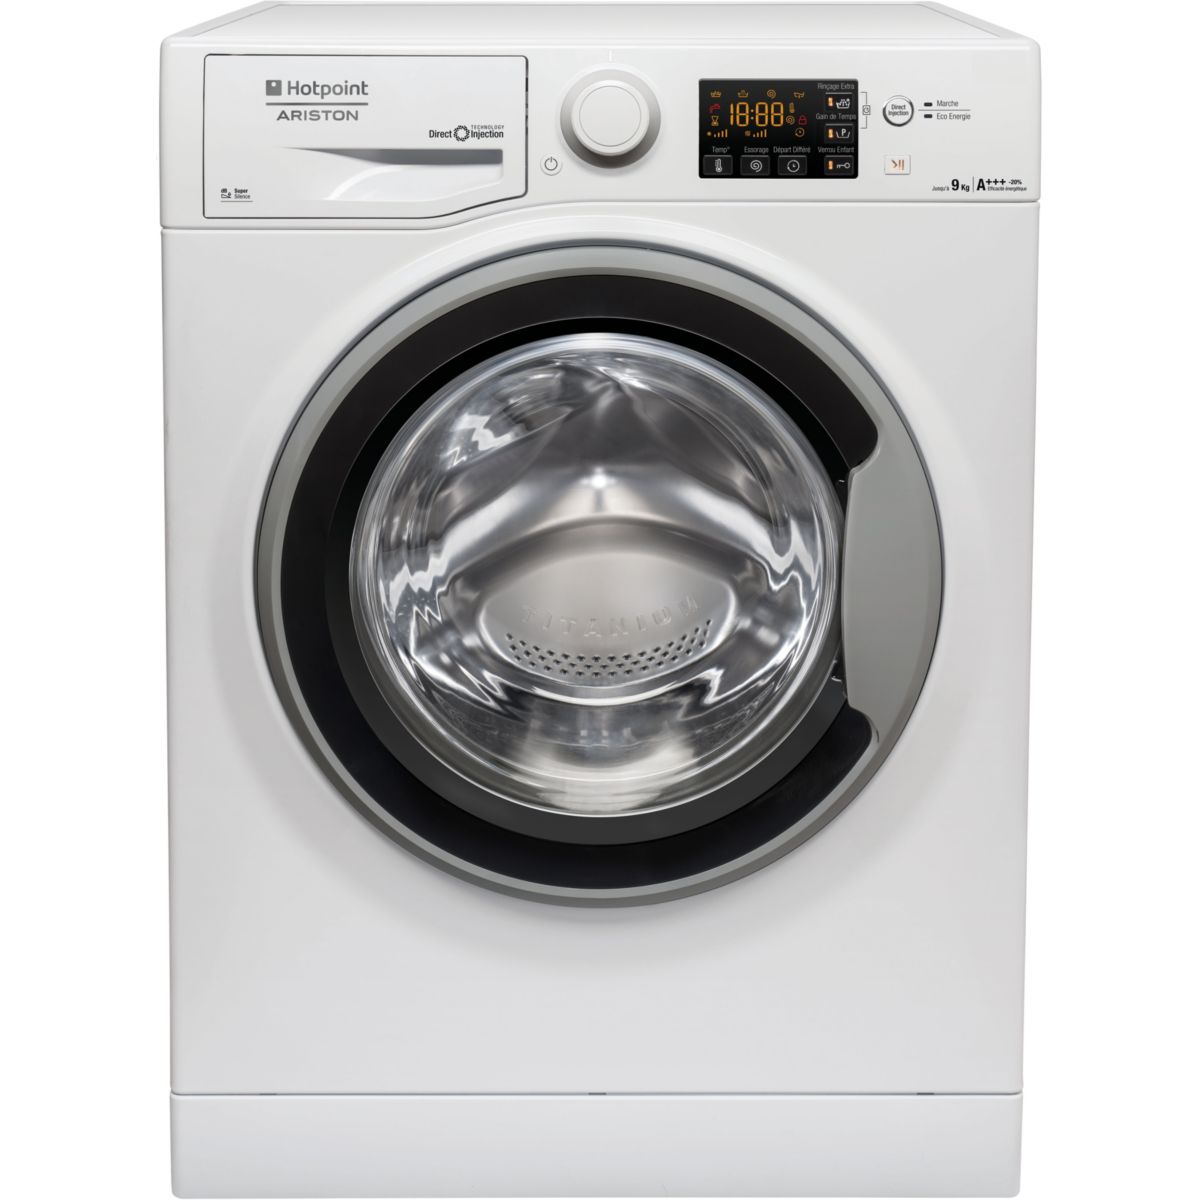 hotpoint rpg 945 js fr lave linge frontal 9 kg comparer avec. Black Bedroom Furniture Sets. Home Design Ideas